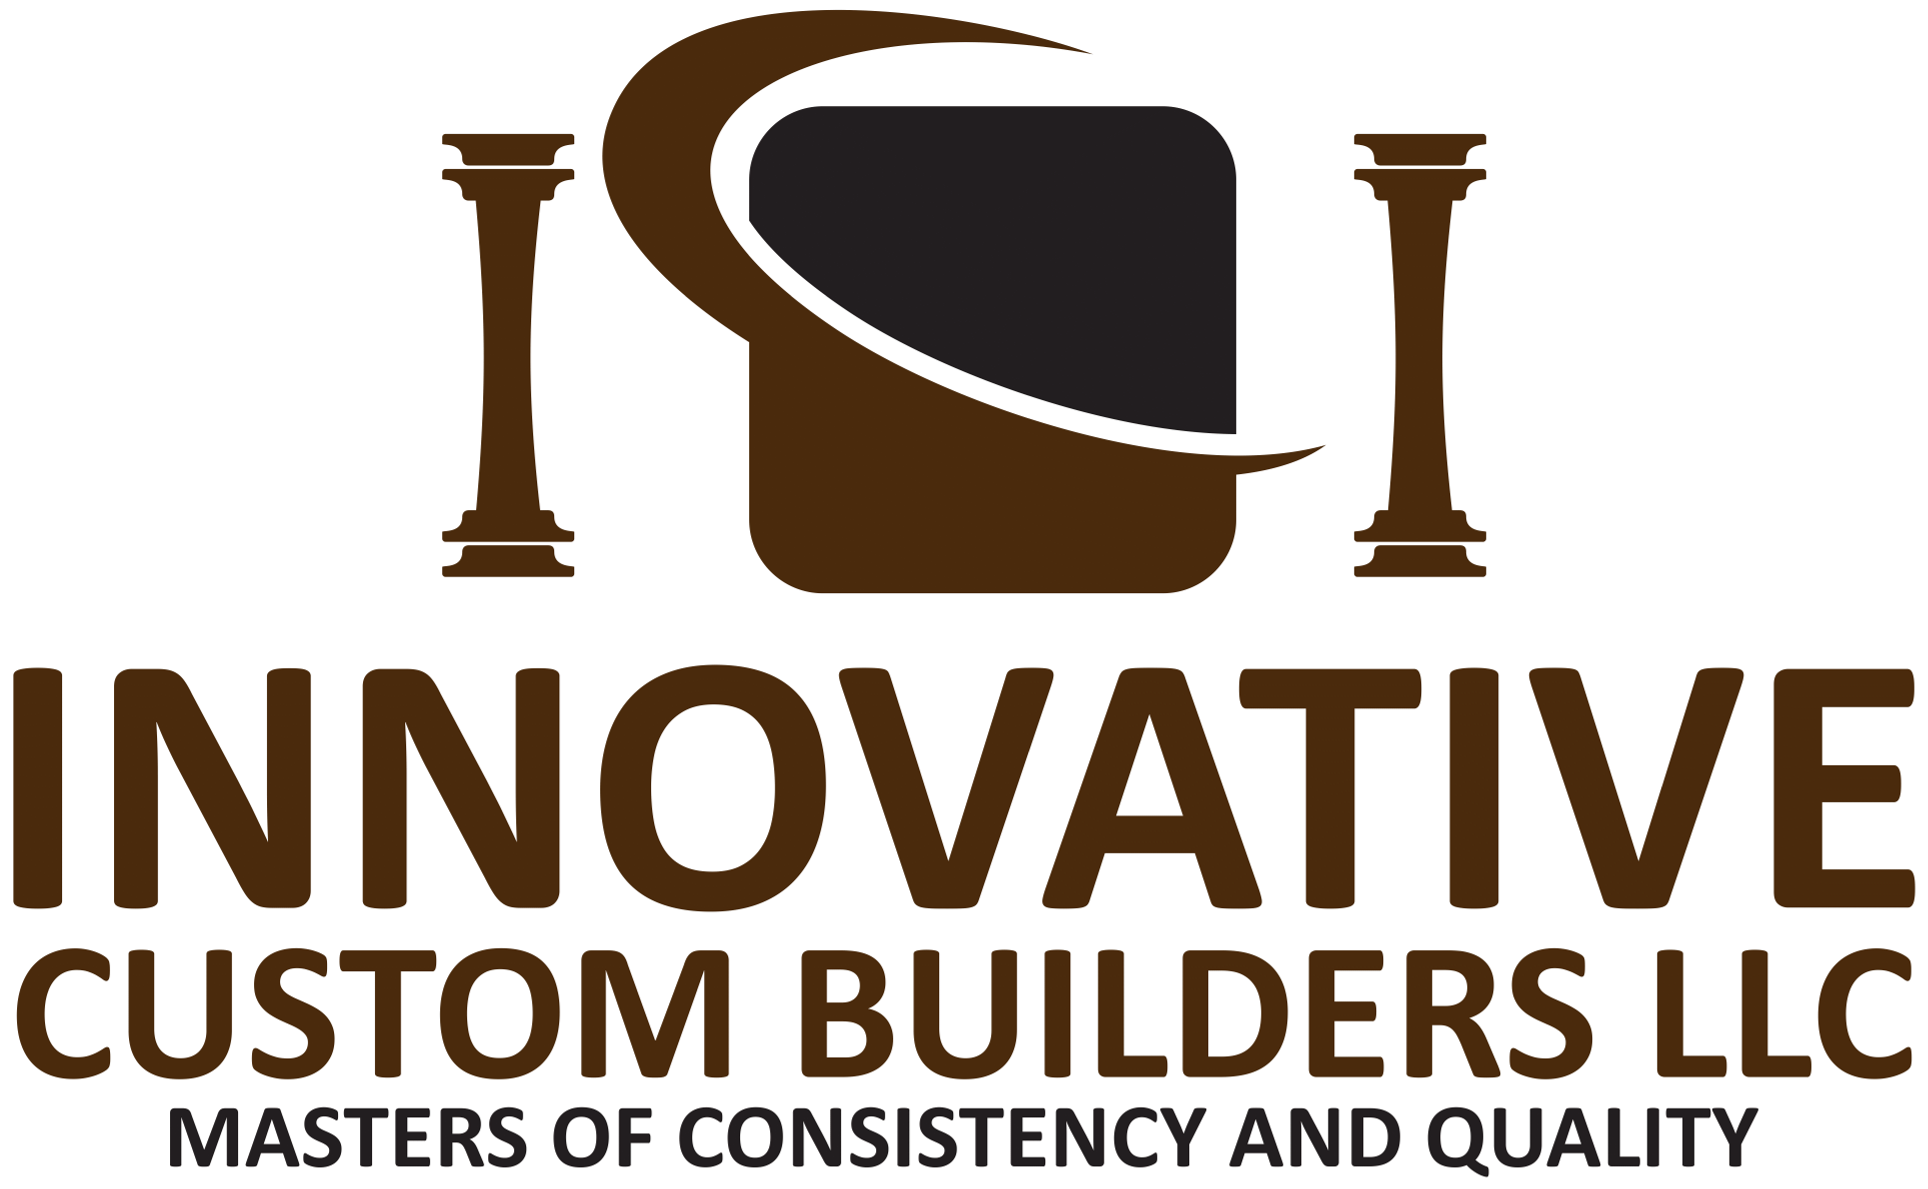 Innovative Custom Home Builders | Bathroom, Kitchens, Additions